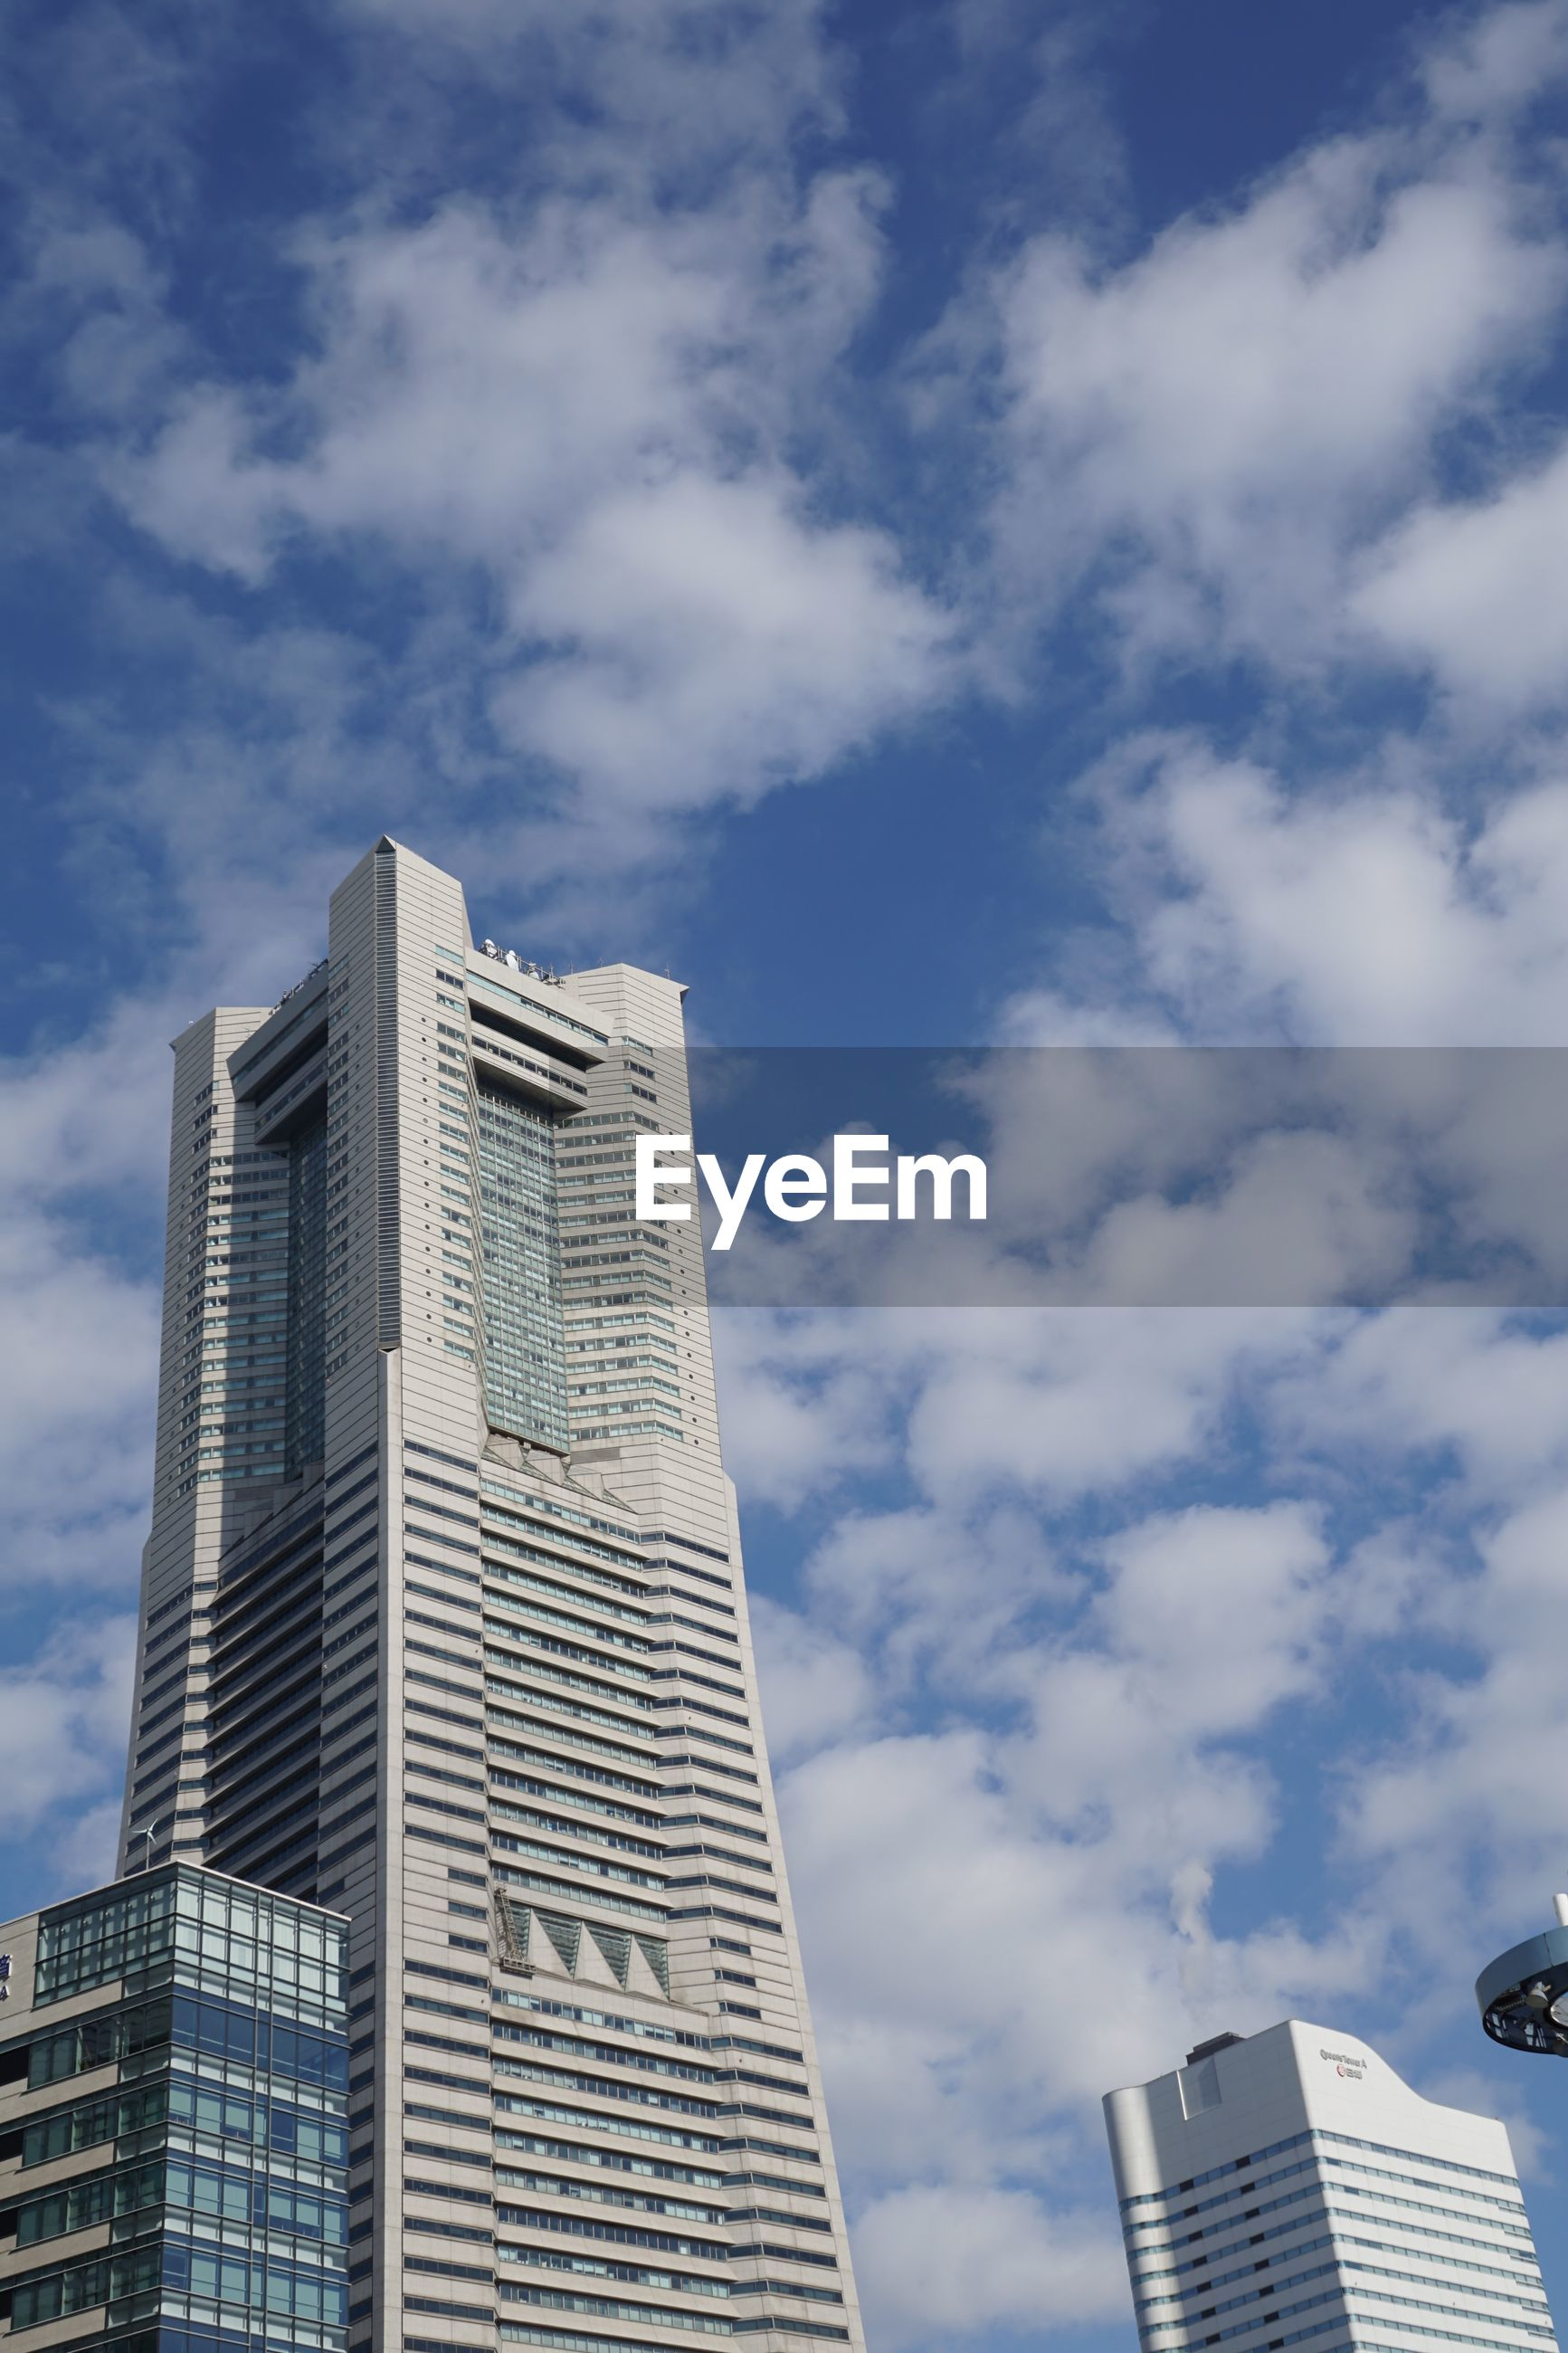 building exterior, architecture, built structure, building, cloud - sky, low angle view, sky, office building exterior, city, tall - high, office, skyscraper, tower, modern, nature, day, no people, outdoors, residential district, travel destinations, financial district